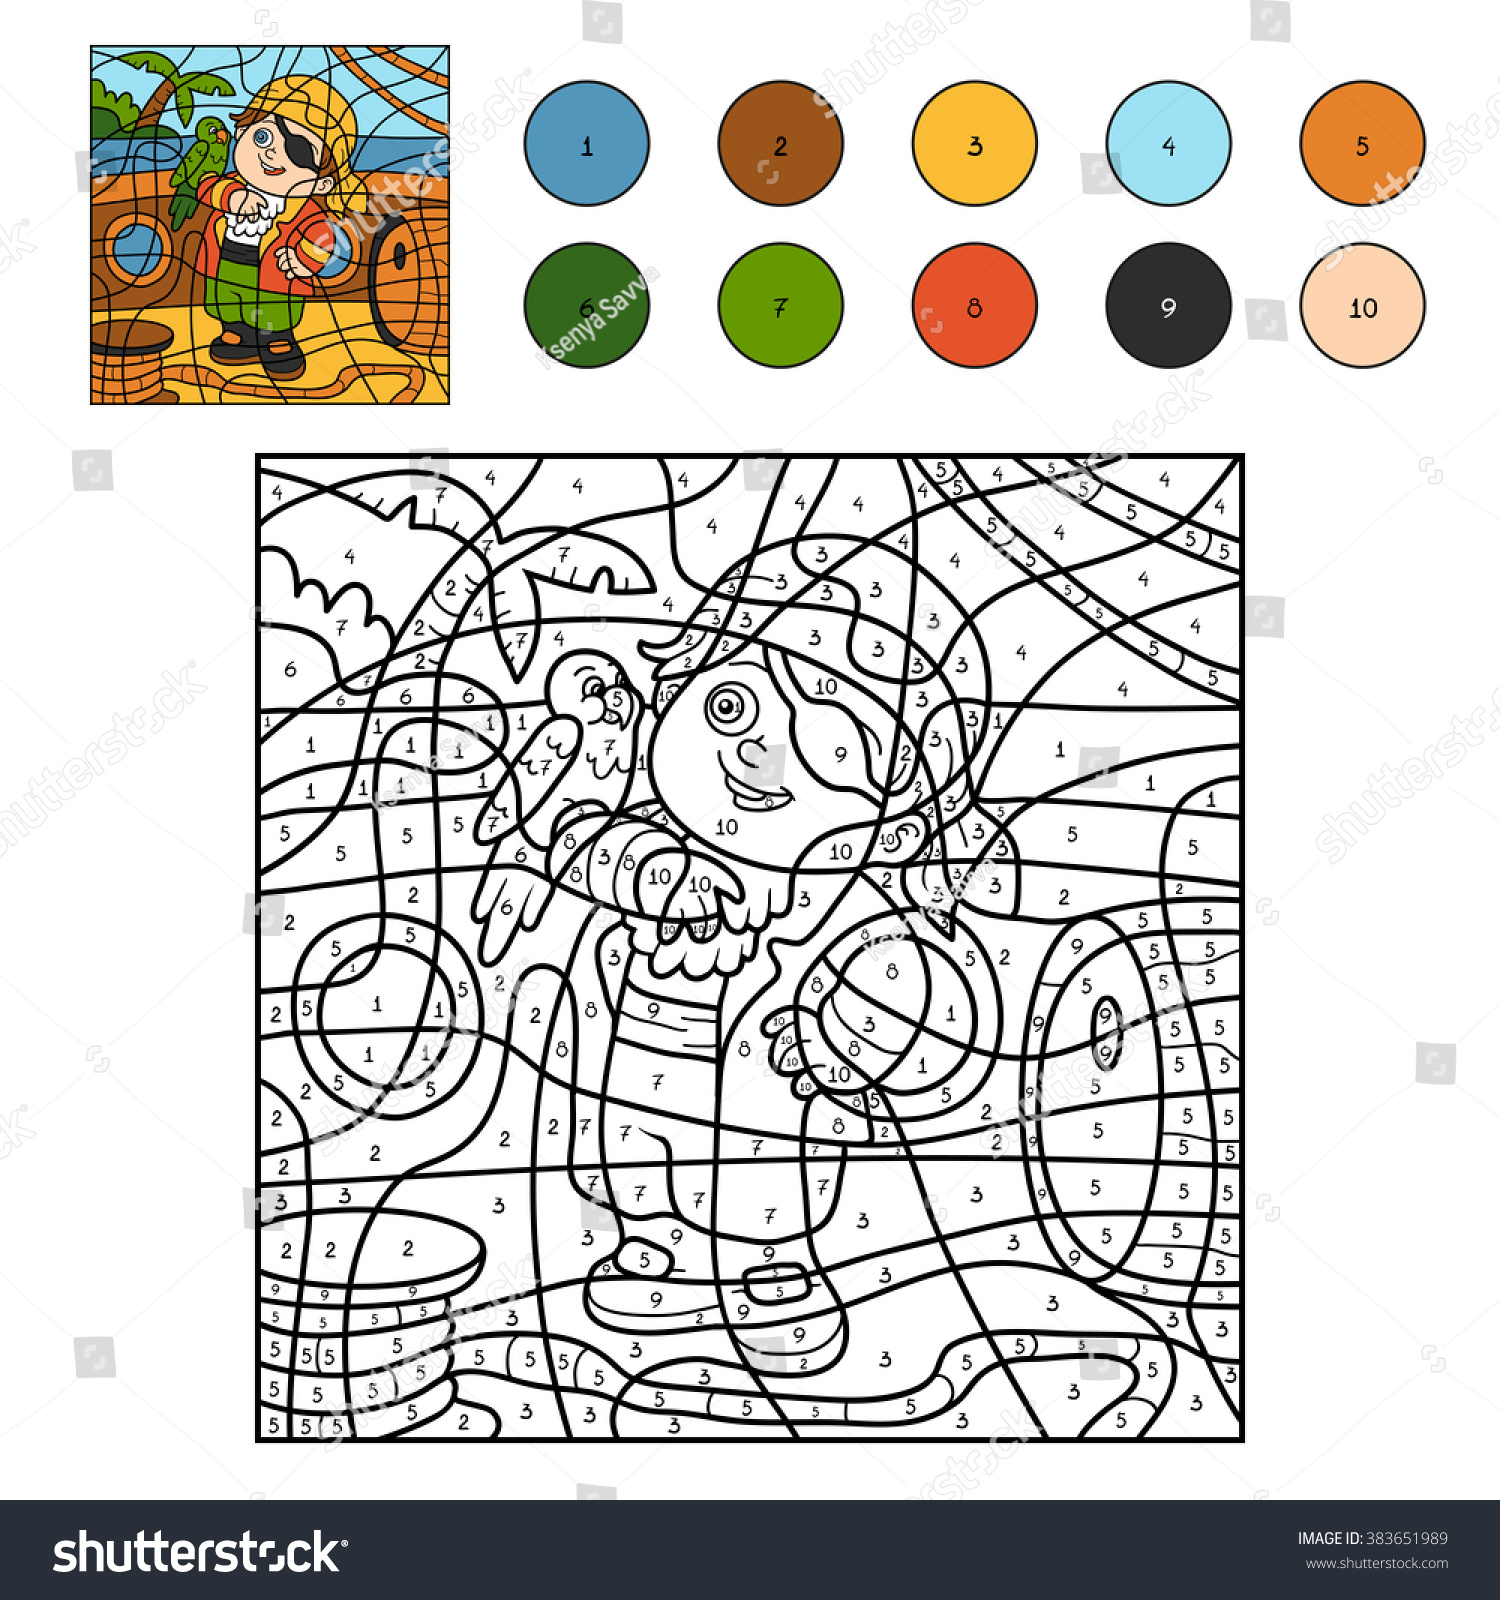 Color By Number Education Game Children Stock Vector 383651989 ...